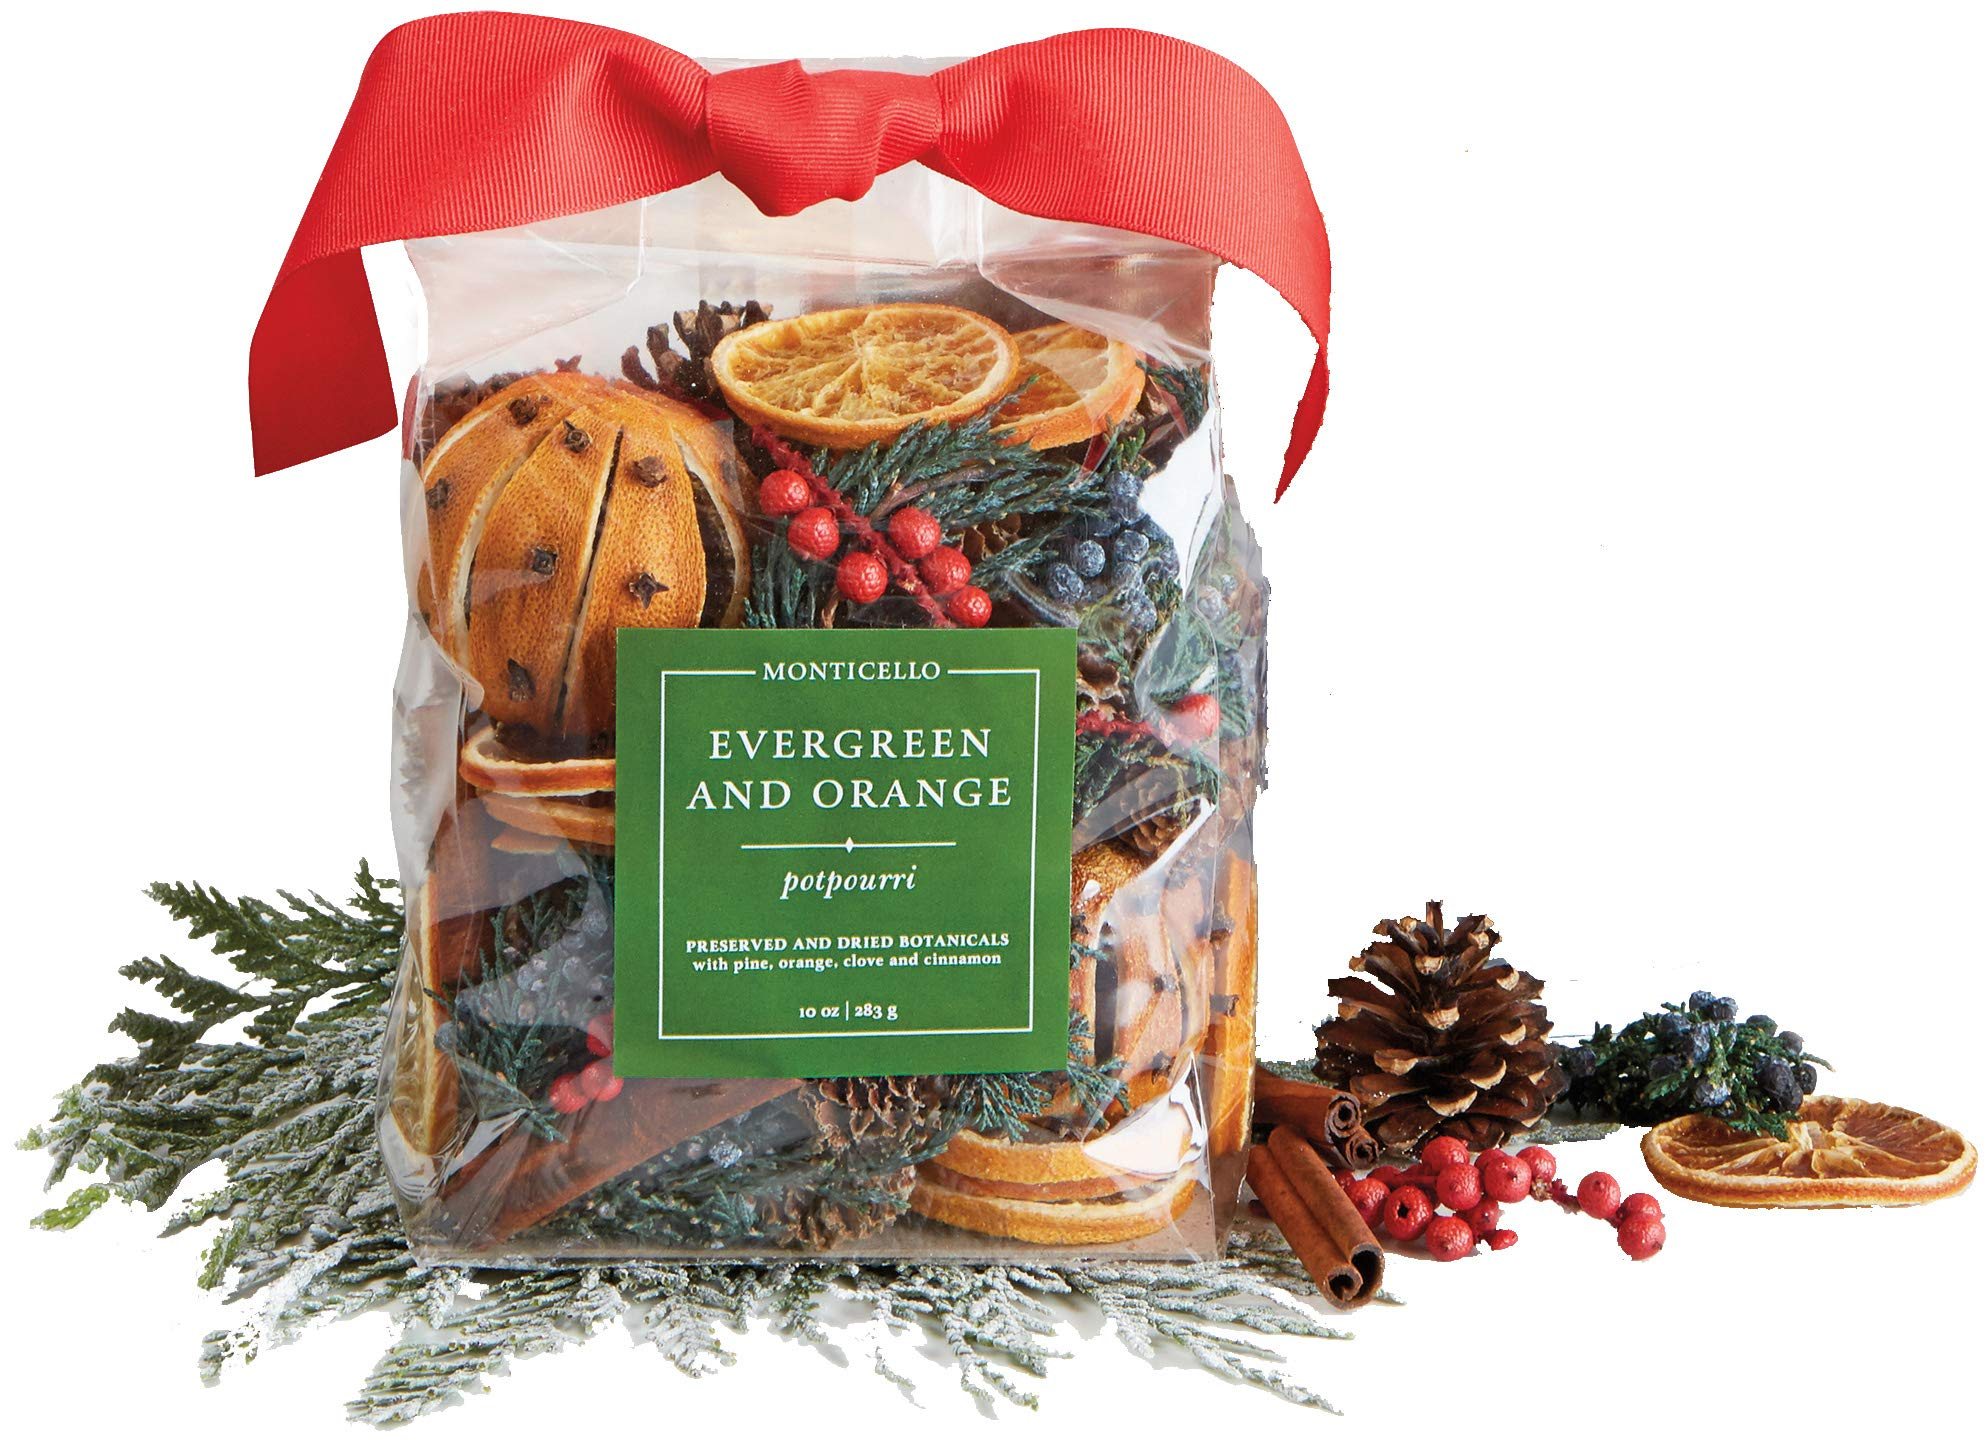 Monticello Evergreen and Orange Potpourri